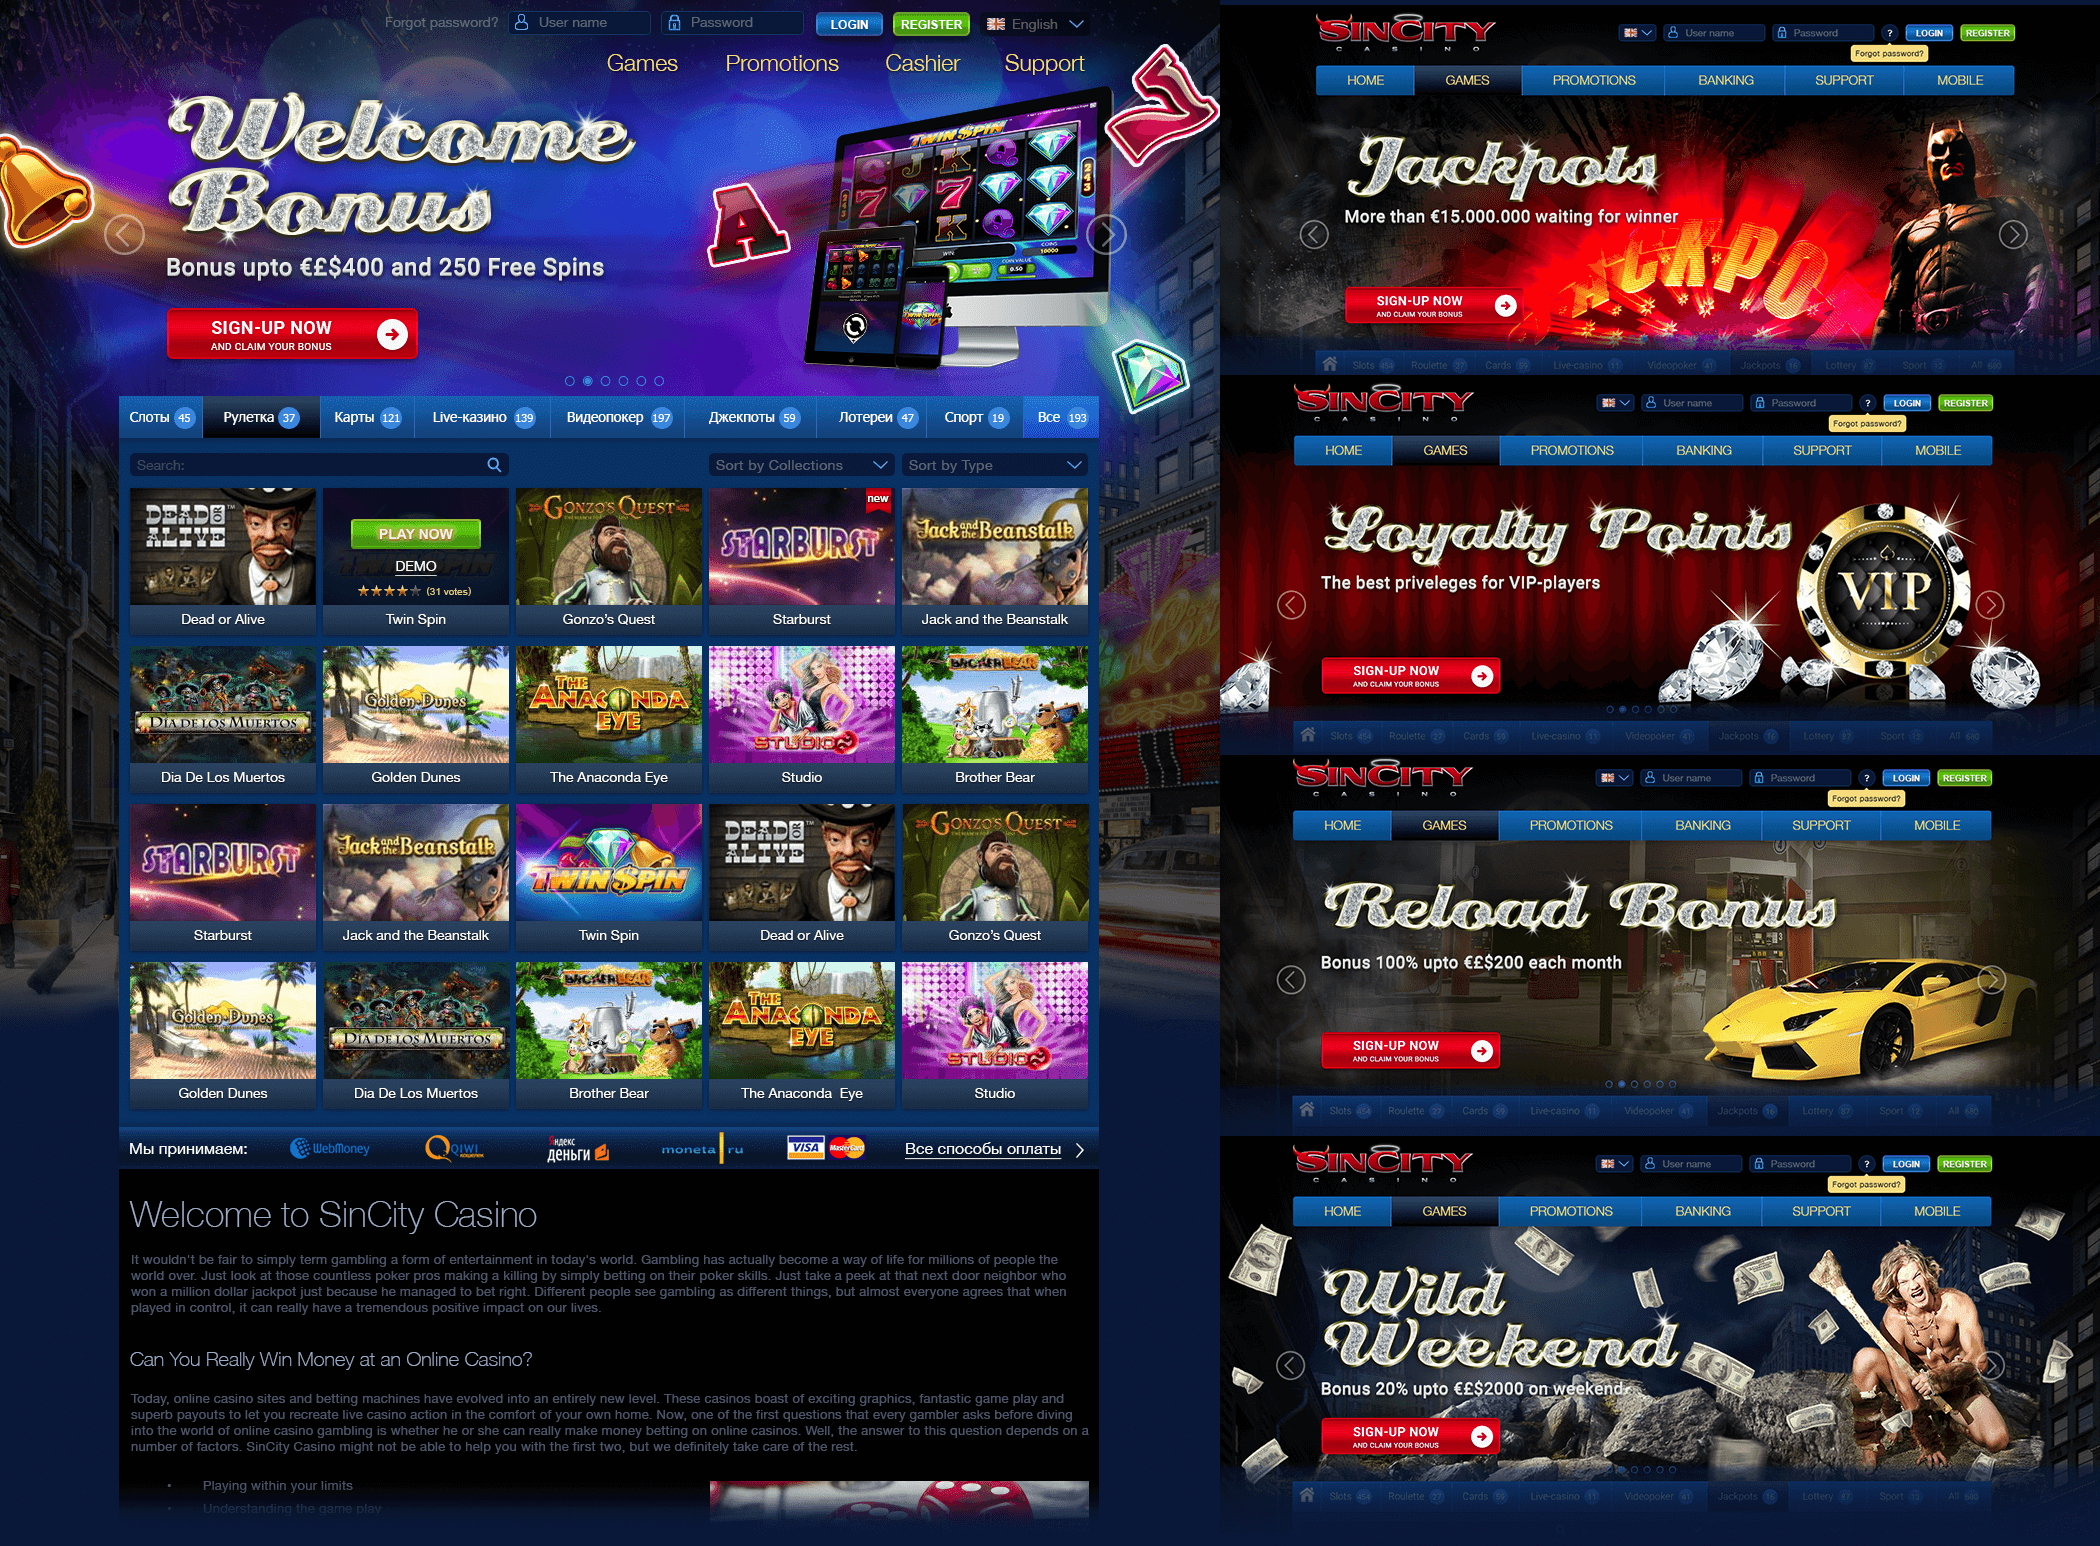 Design for gambling webportal Sincity Casino